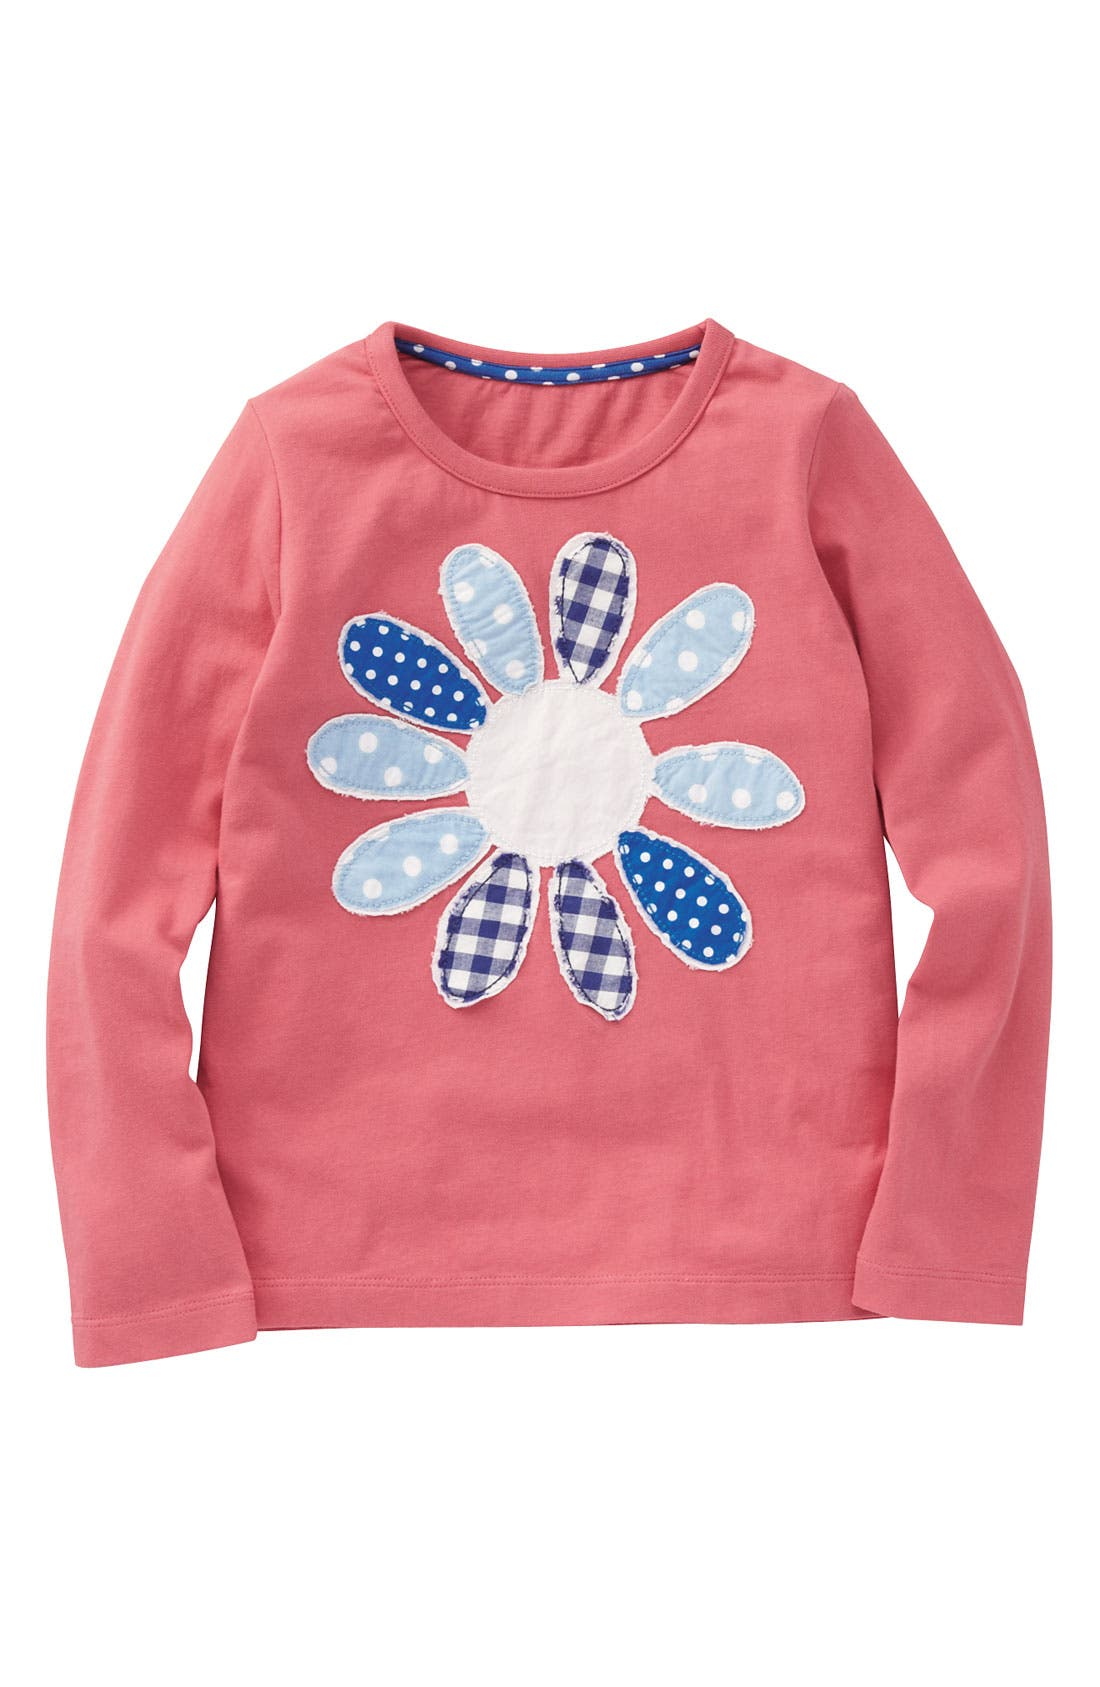 Alternate Image 1 Selected - Mini Boden Long Sleeve Tee (Toddler)